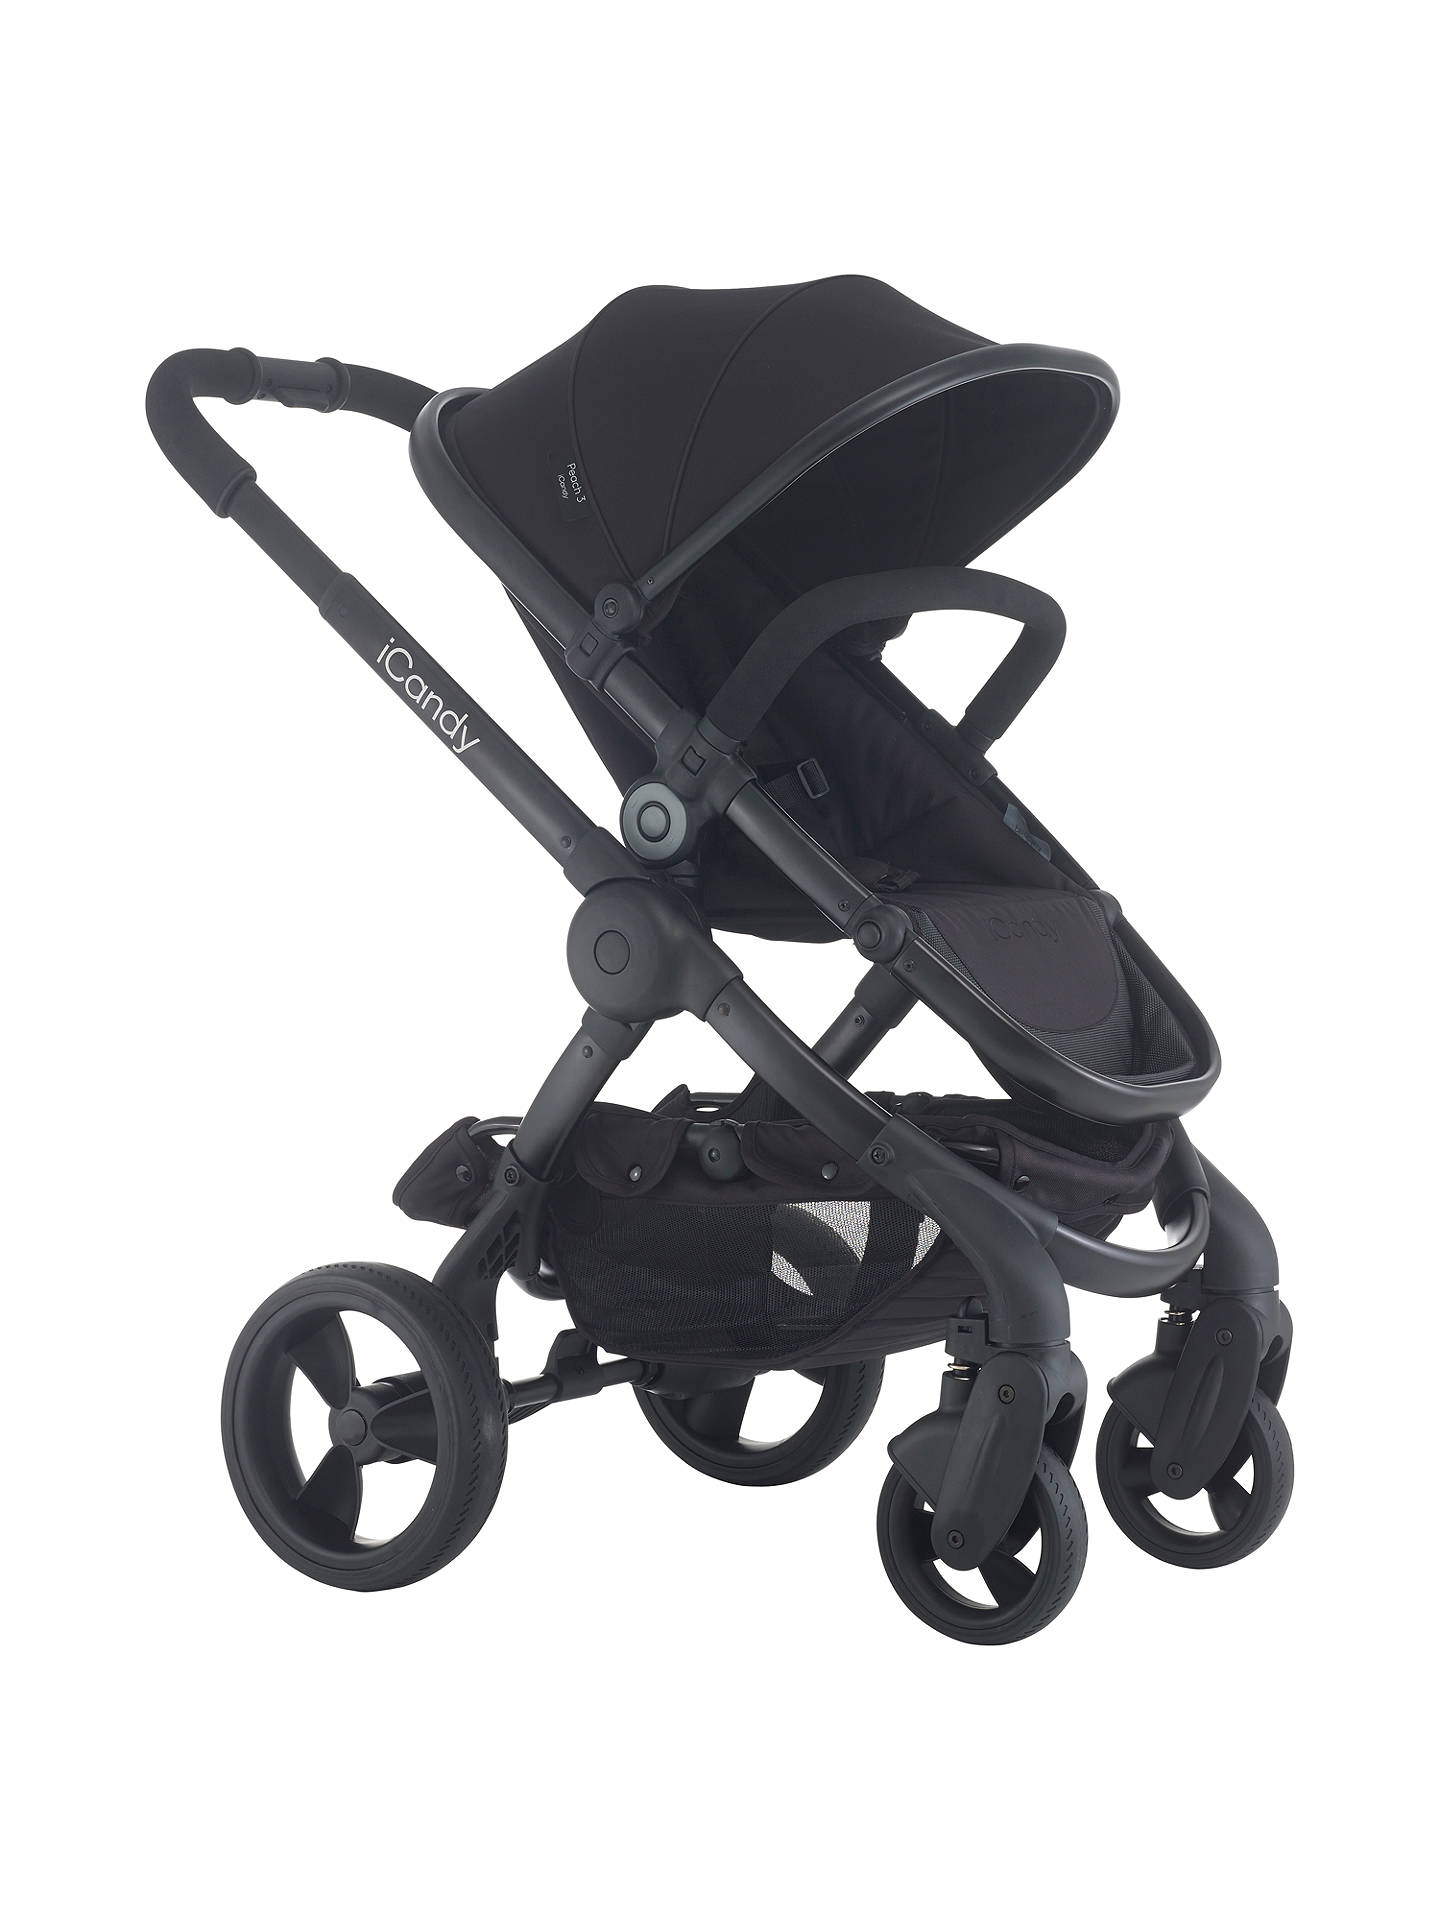 Icandy Peach 3 Pushchair With Black Chassis Amp Jet Black